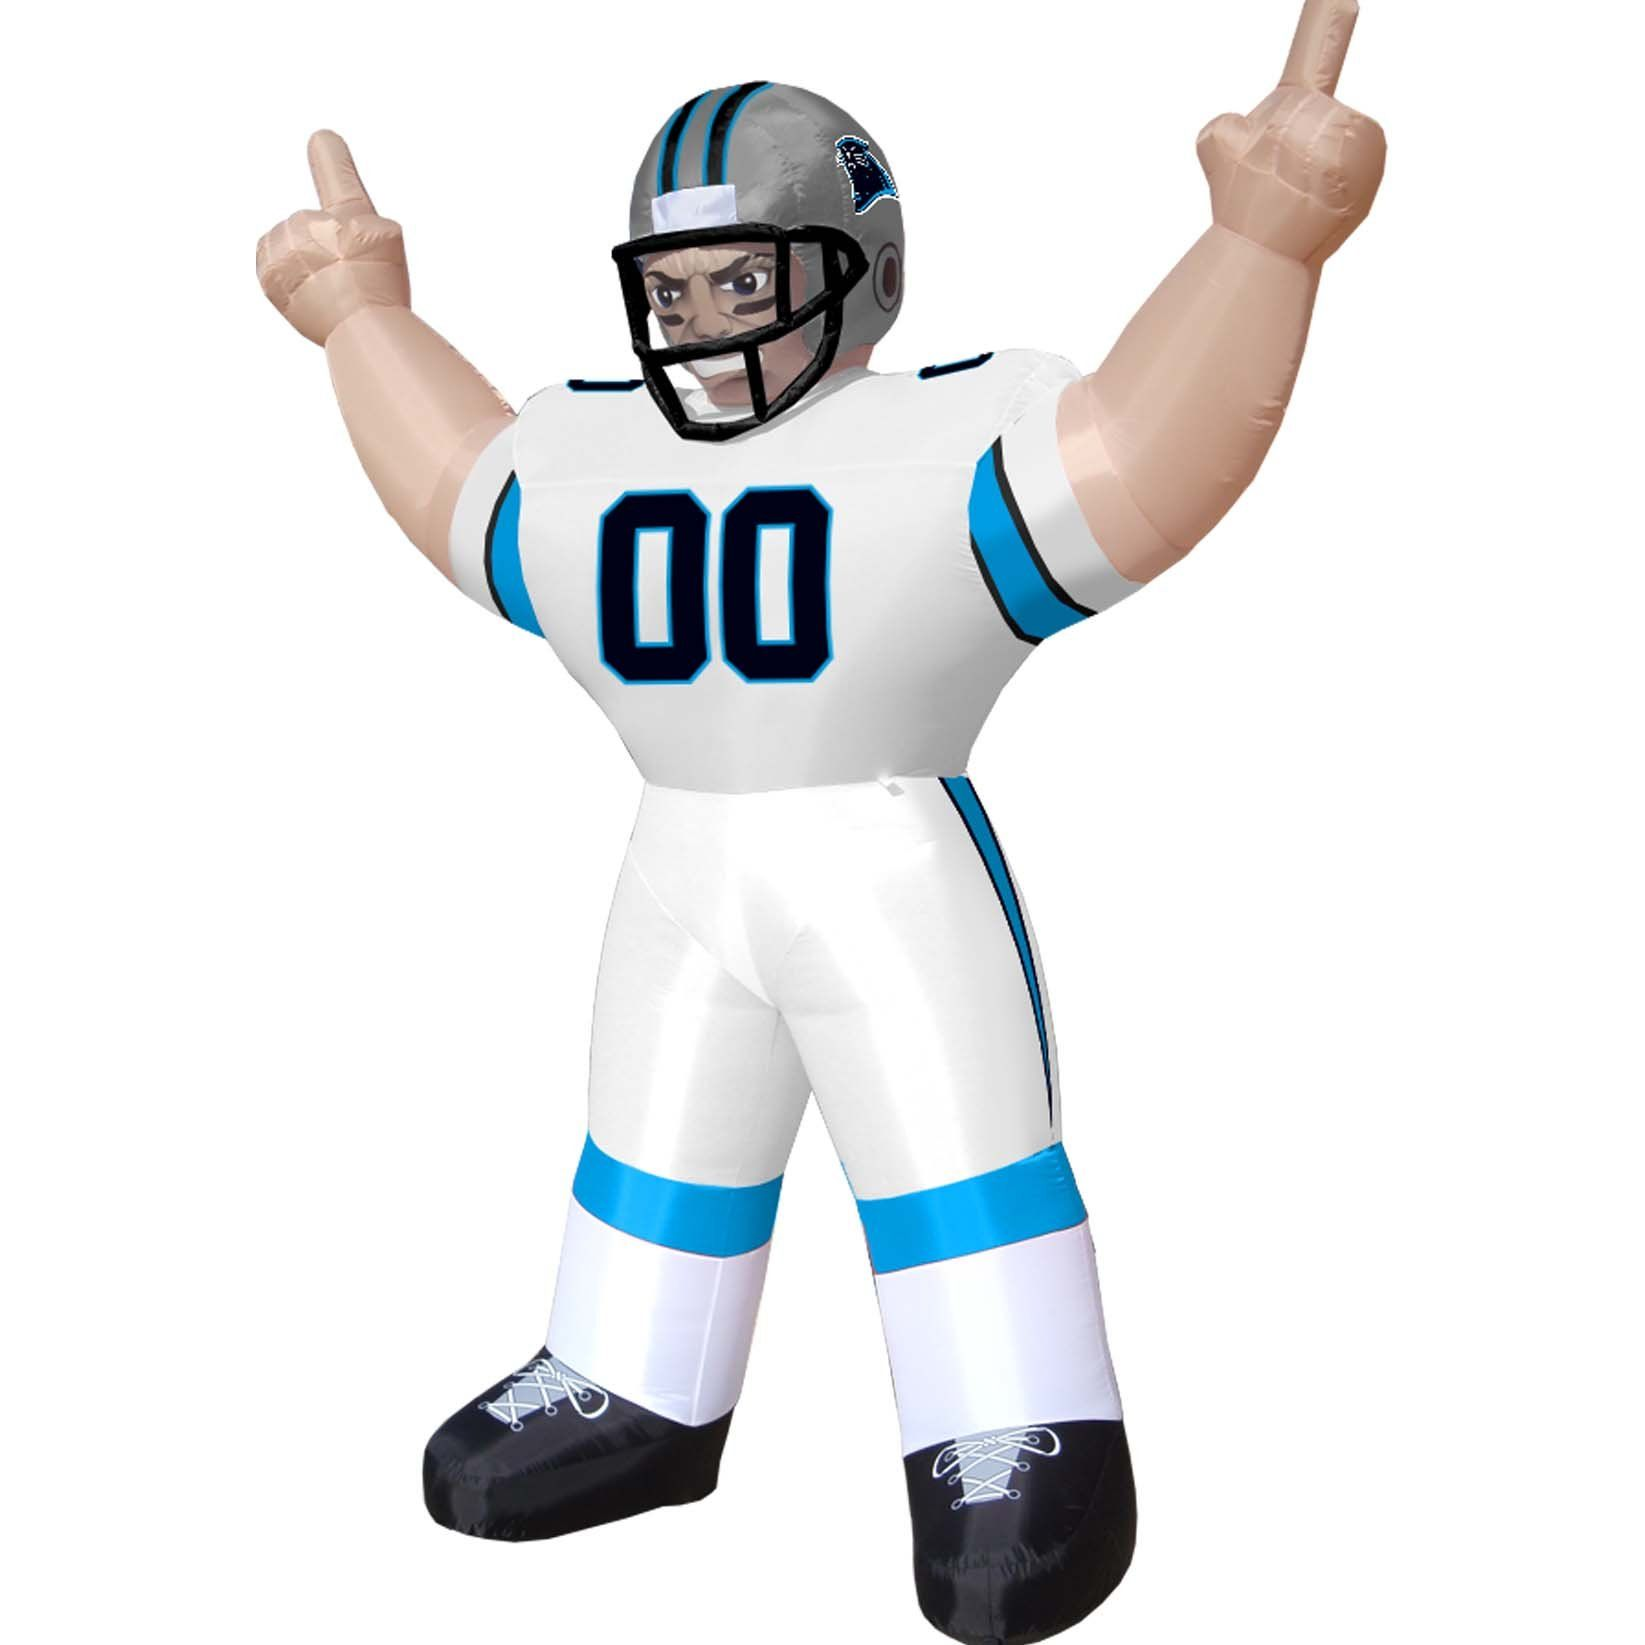 Amazon Com Carolina Panthers Tiny Inflatable Lawn Decoration Sports Fan Outdoor Statues Carolina Panthers Carolina Panthers Football Carolina Panthers Gear